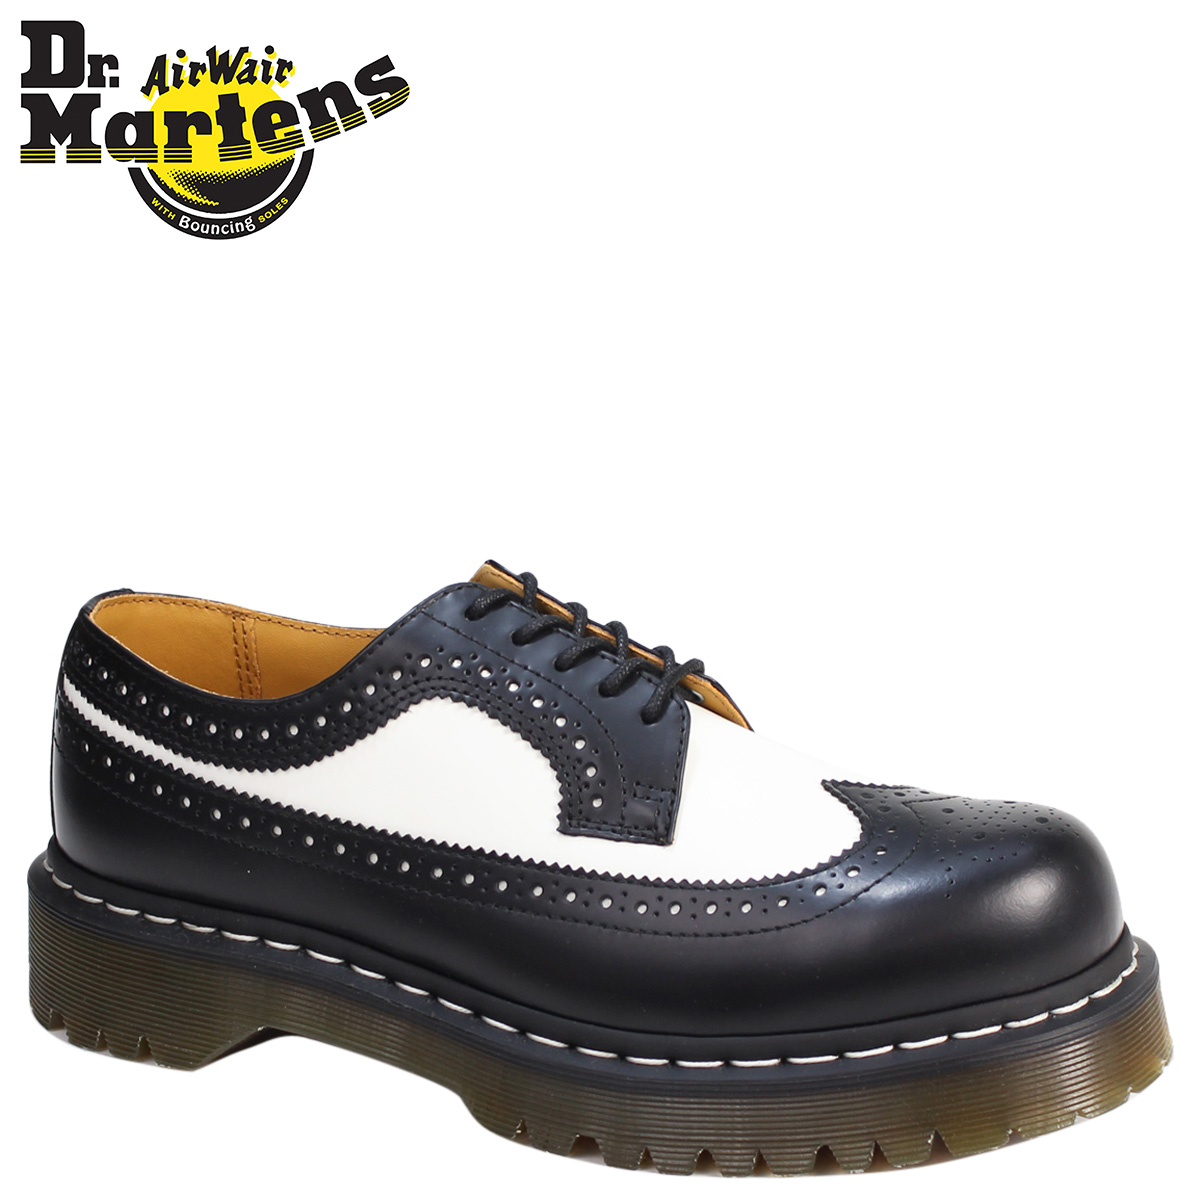 online retailer 1dfc9 70749 Doctor Martin 5 hall 3989 men s Lady s Dr.Martens wing tip shoes 5 EYE  BROGUE